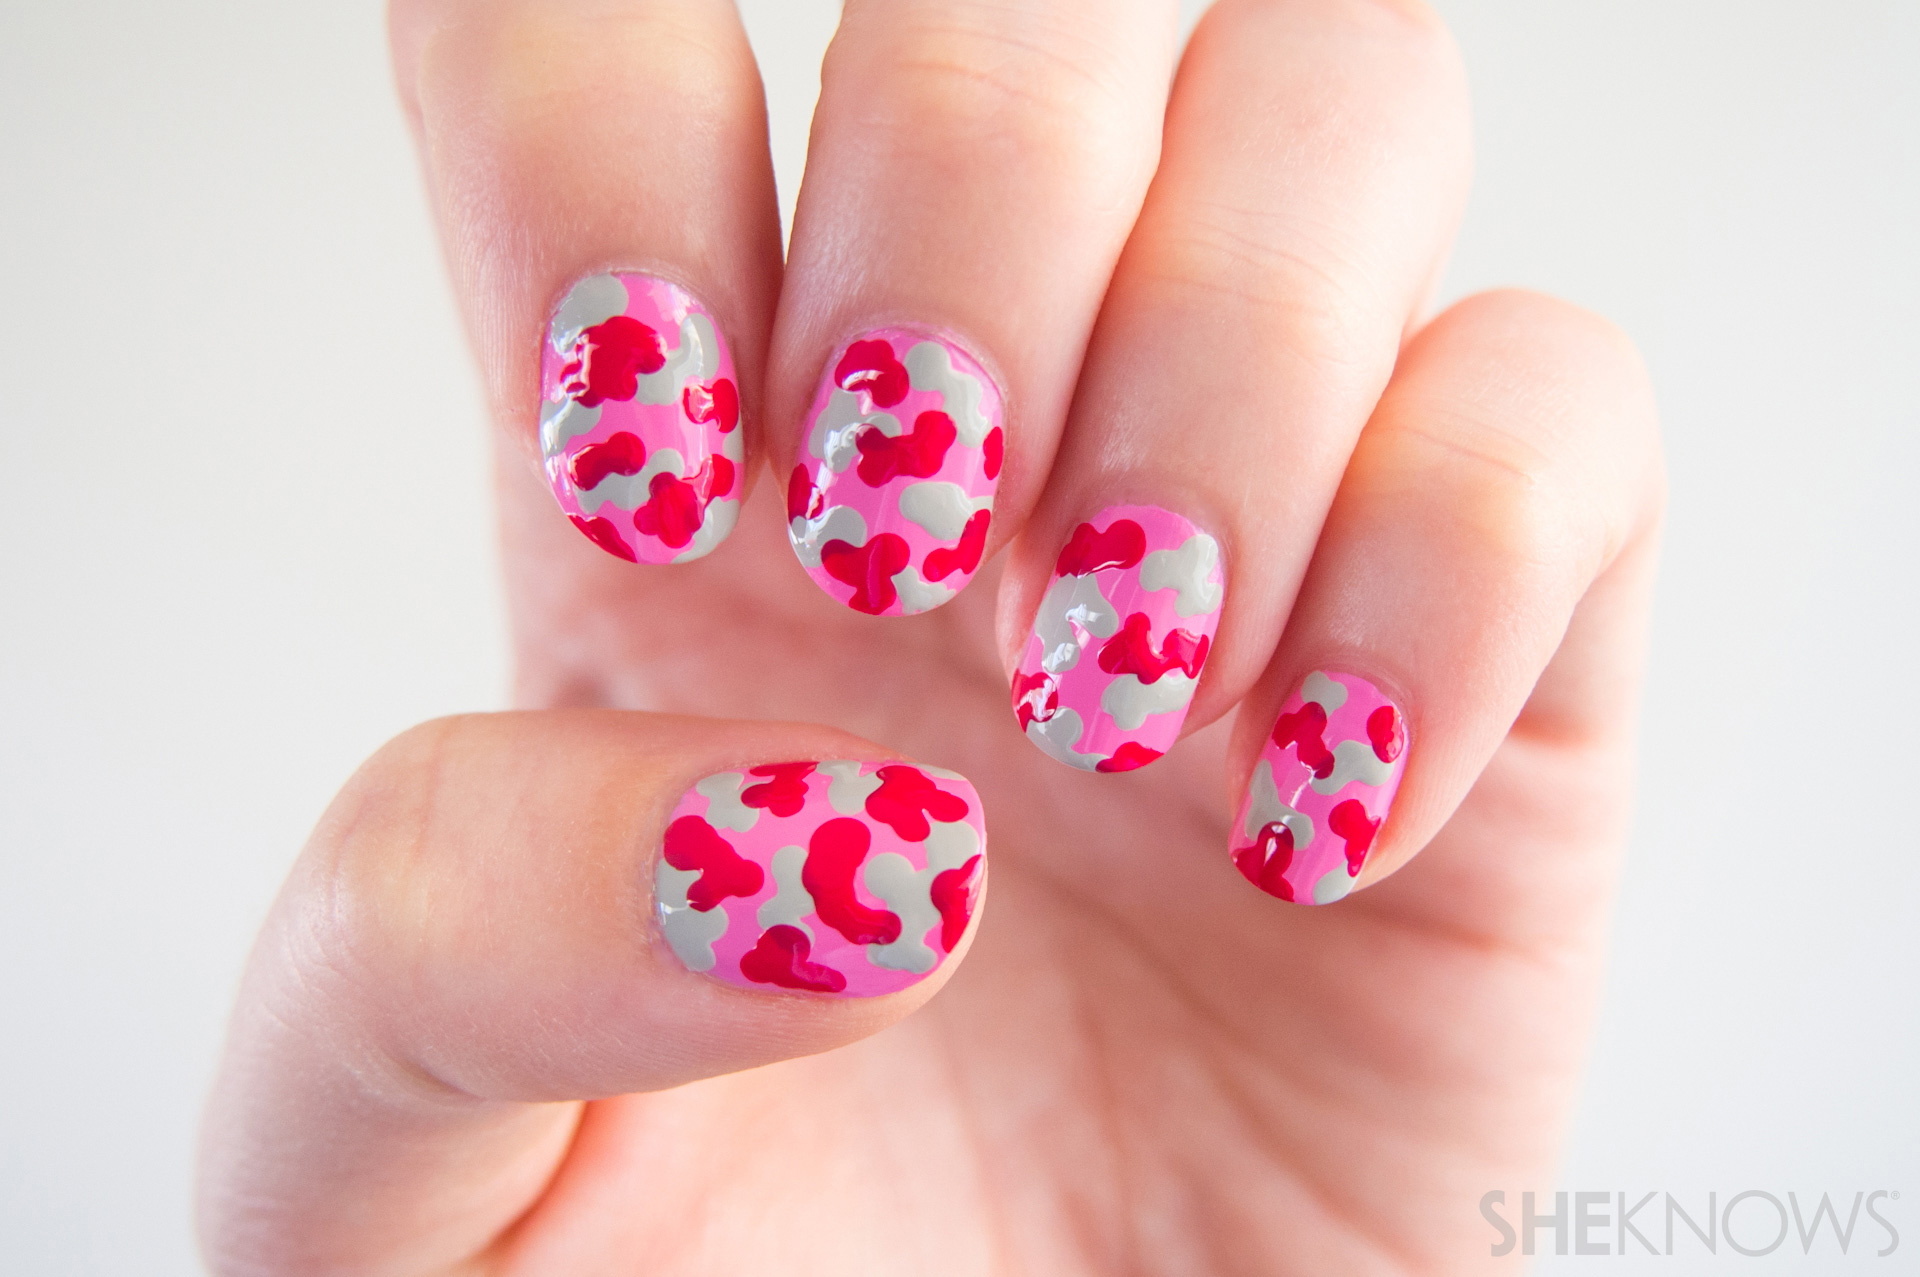 Nail design Pink camo print: Step 3: Allow to dry before applying a top coat.